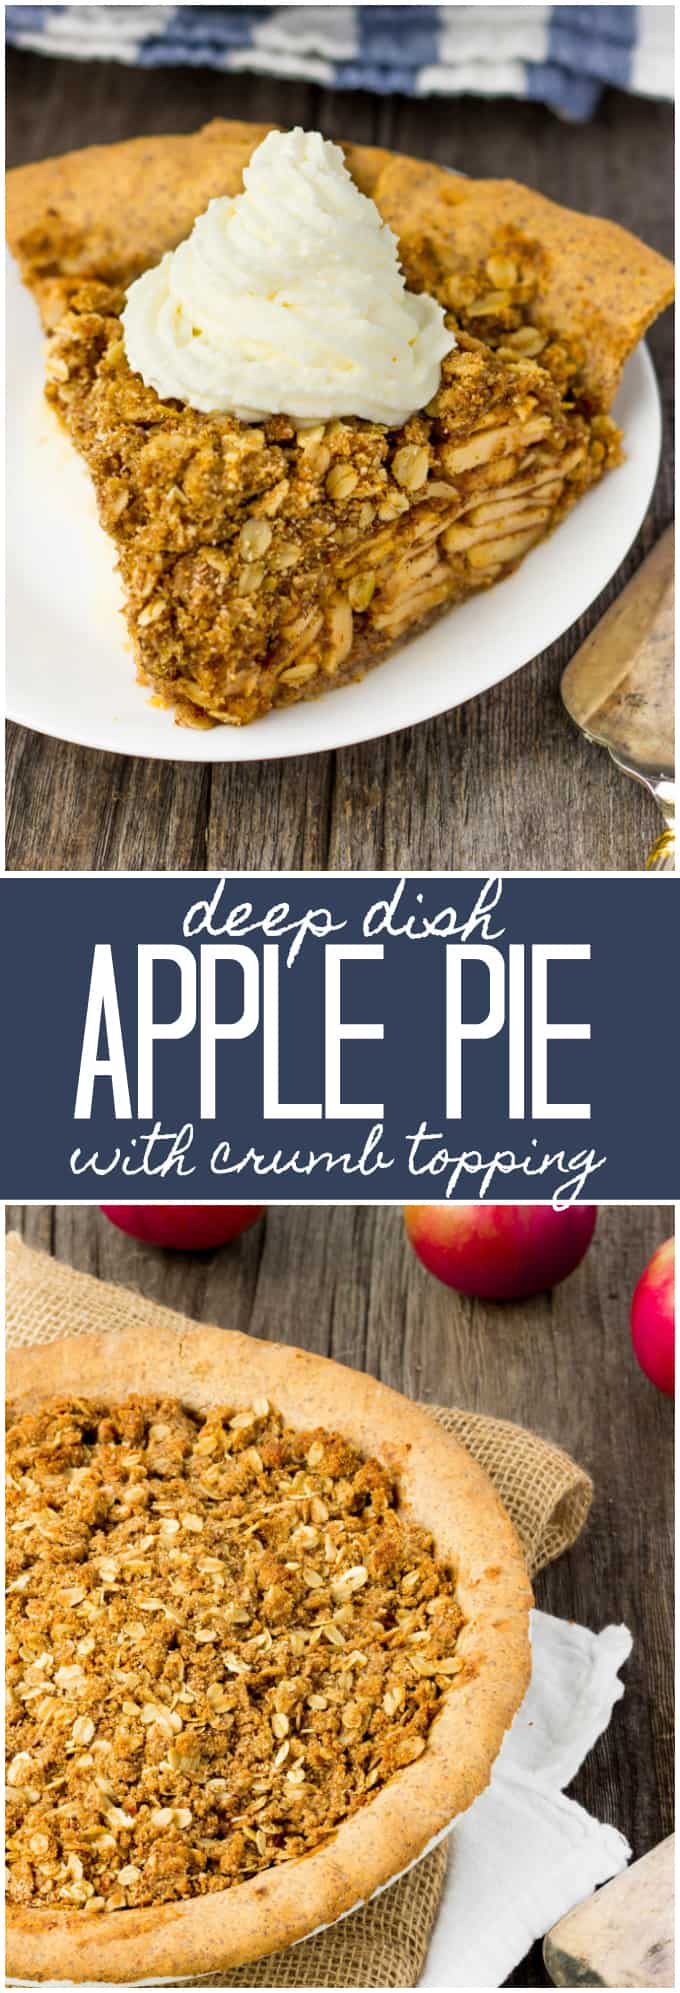 Deep Dish Apple Pie with Crumb Topping - The perfect fall dessert. This easy to make and 100% healthy dessert is made of 100% real food ingredients. It is gluten-free, vegan, dairy-free, flourless, egg-free and full of flavor!